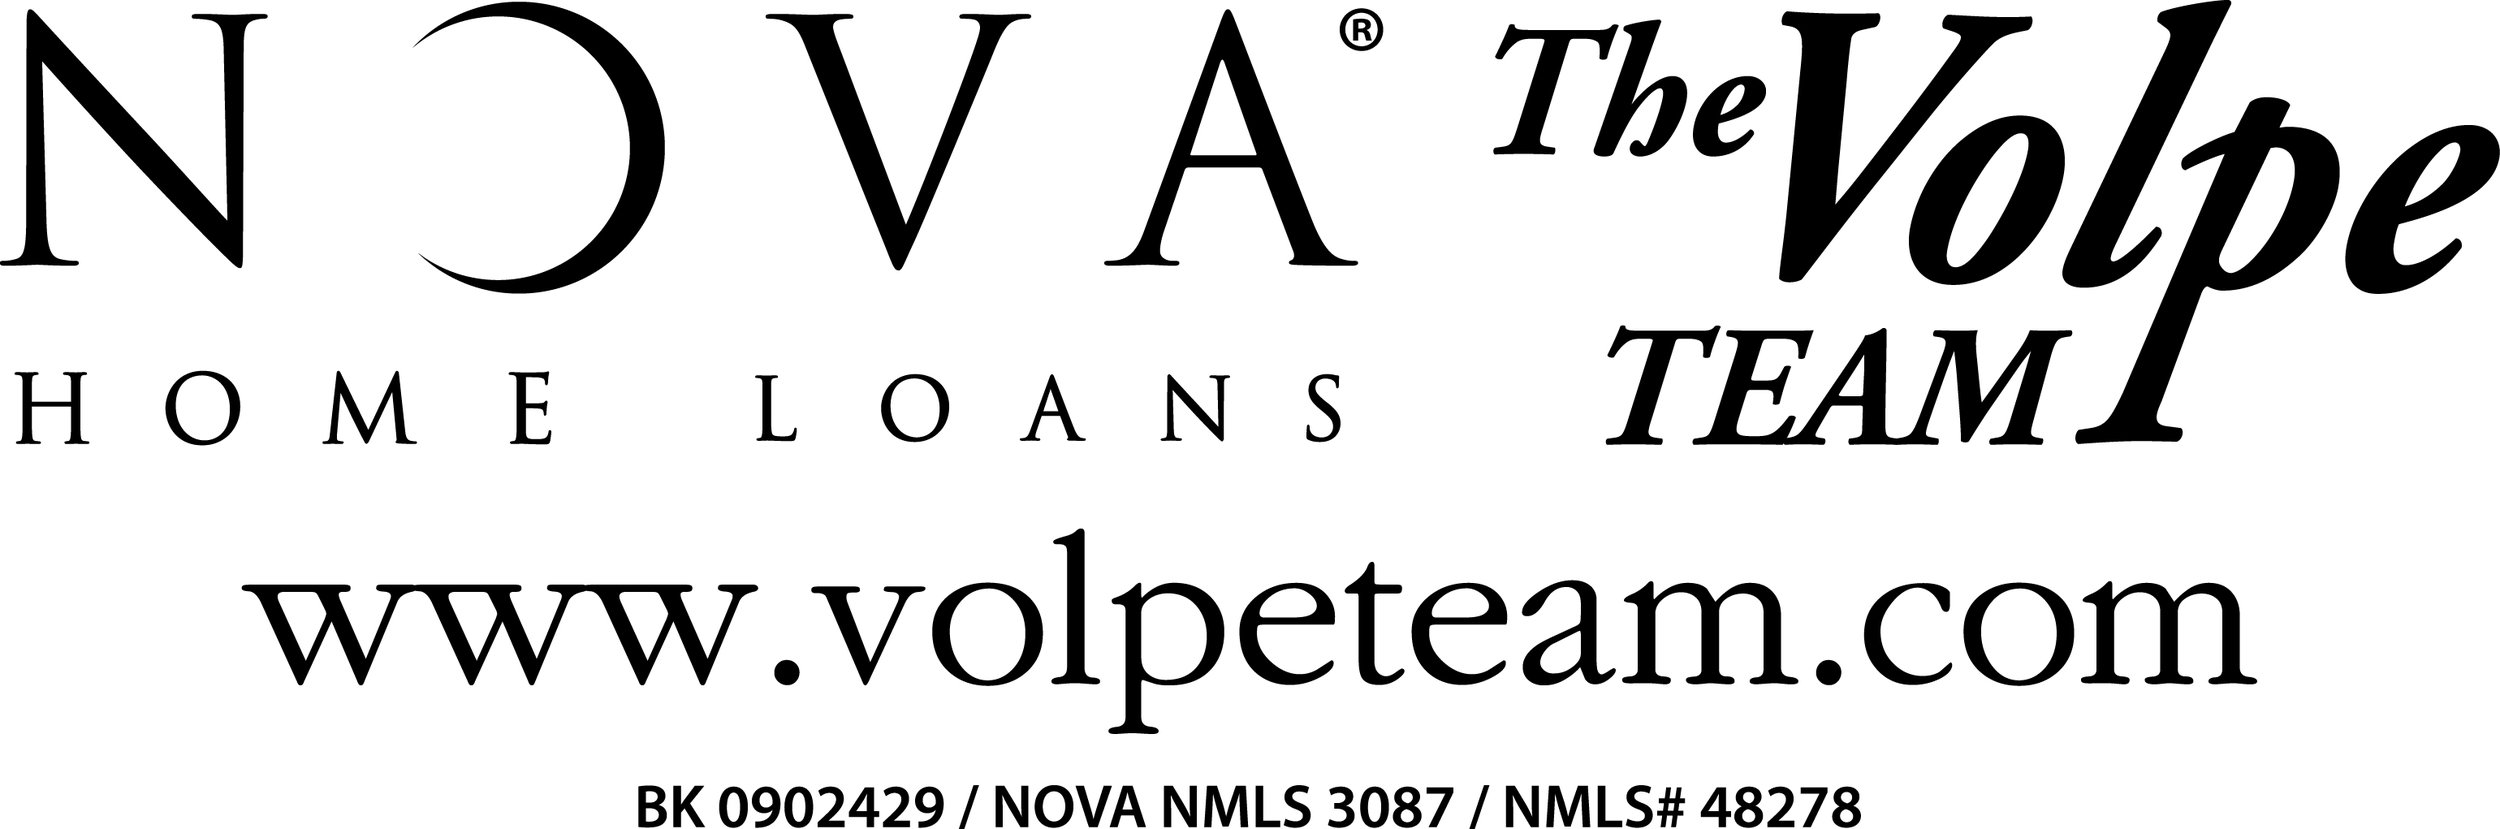 Copy of Nova Home Loans - the Volpe Team - Badge Sponsor